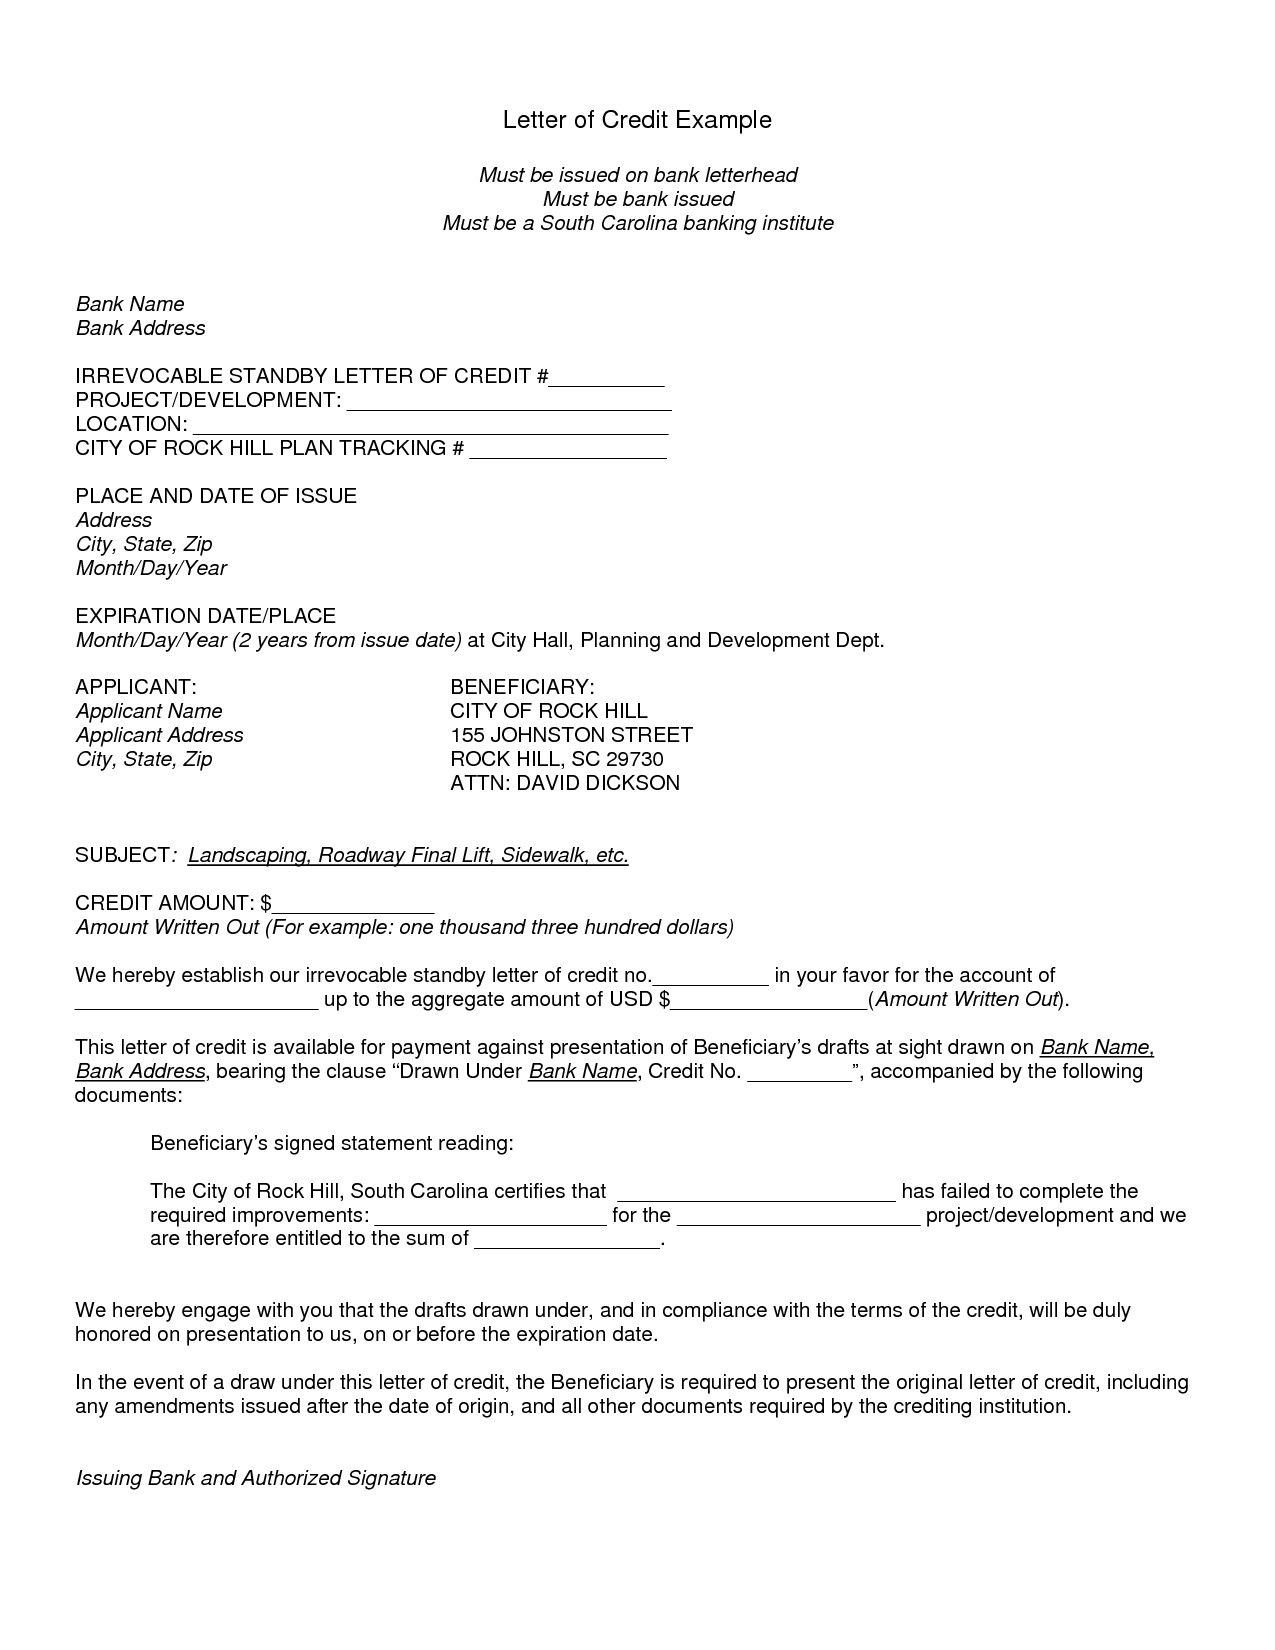 Awesome Irrevocable Letter Of Credit Awesome Irrevocable Letter Of